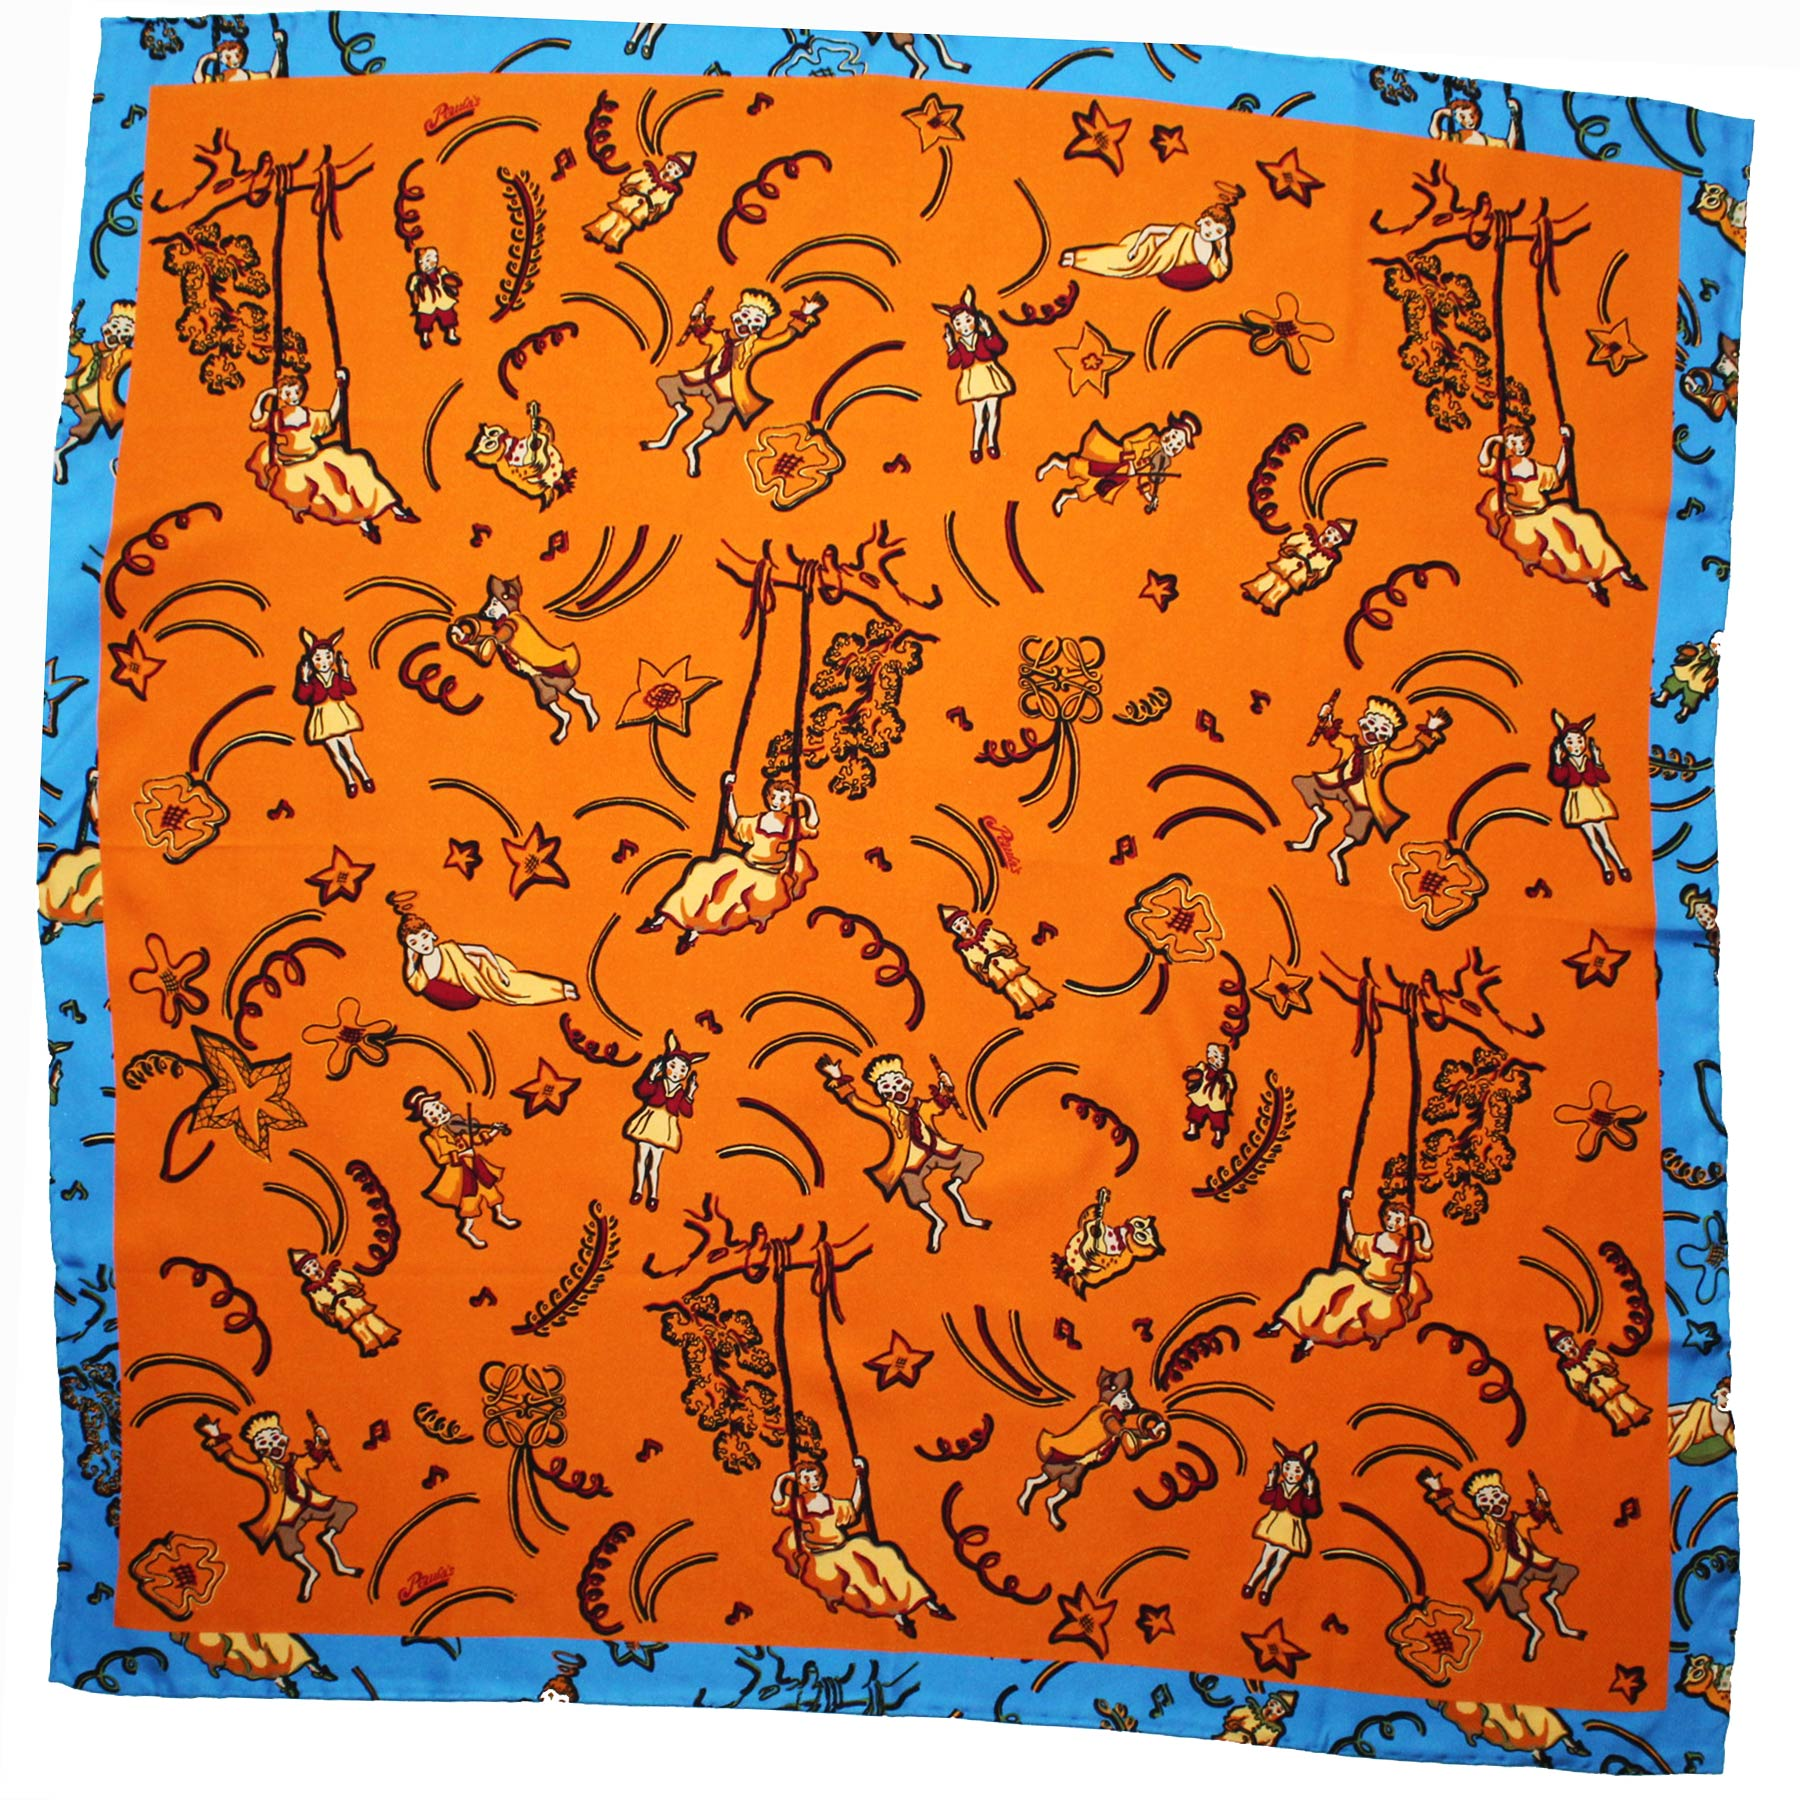 Loewe Scarf Orange Blue Design Paula's Ibiza - Large Twill Silk Square Scarf SALE